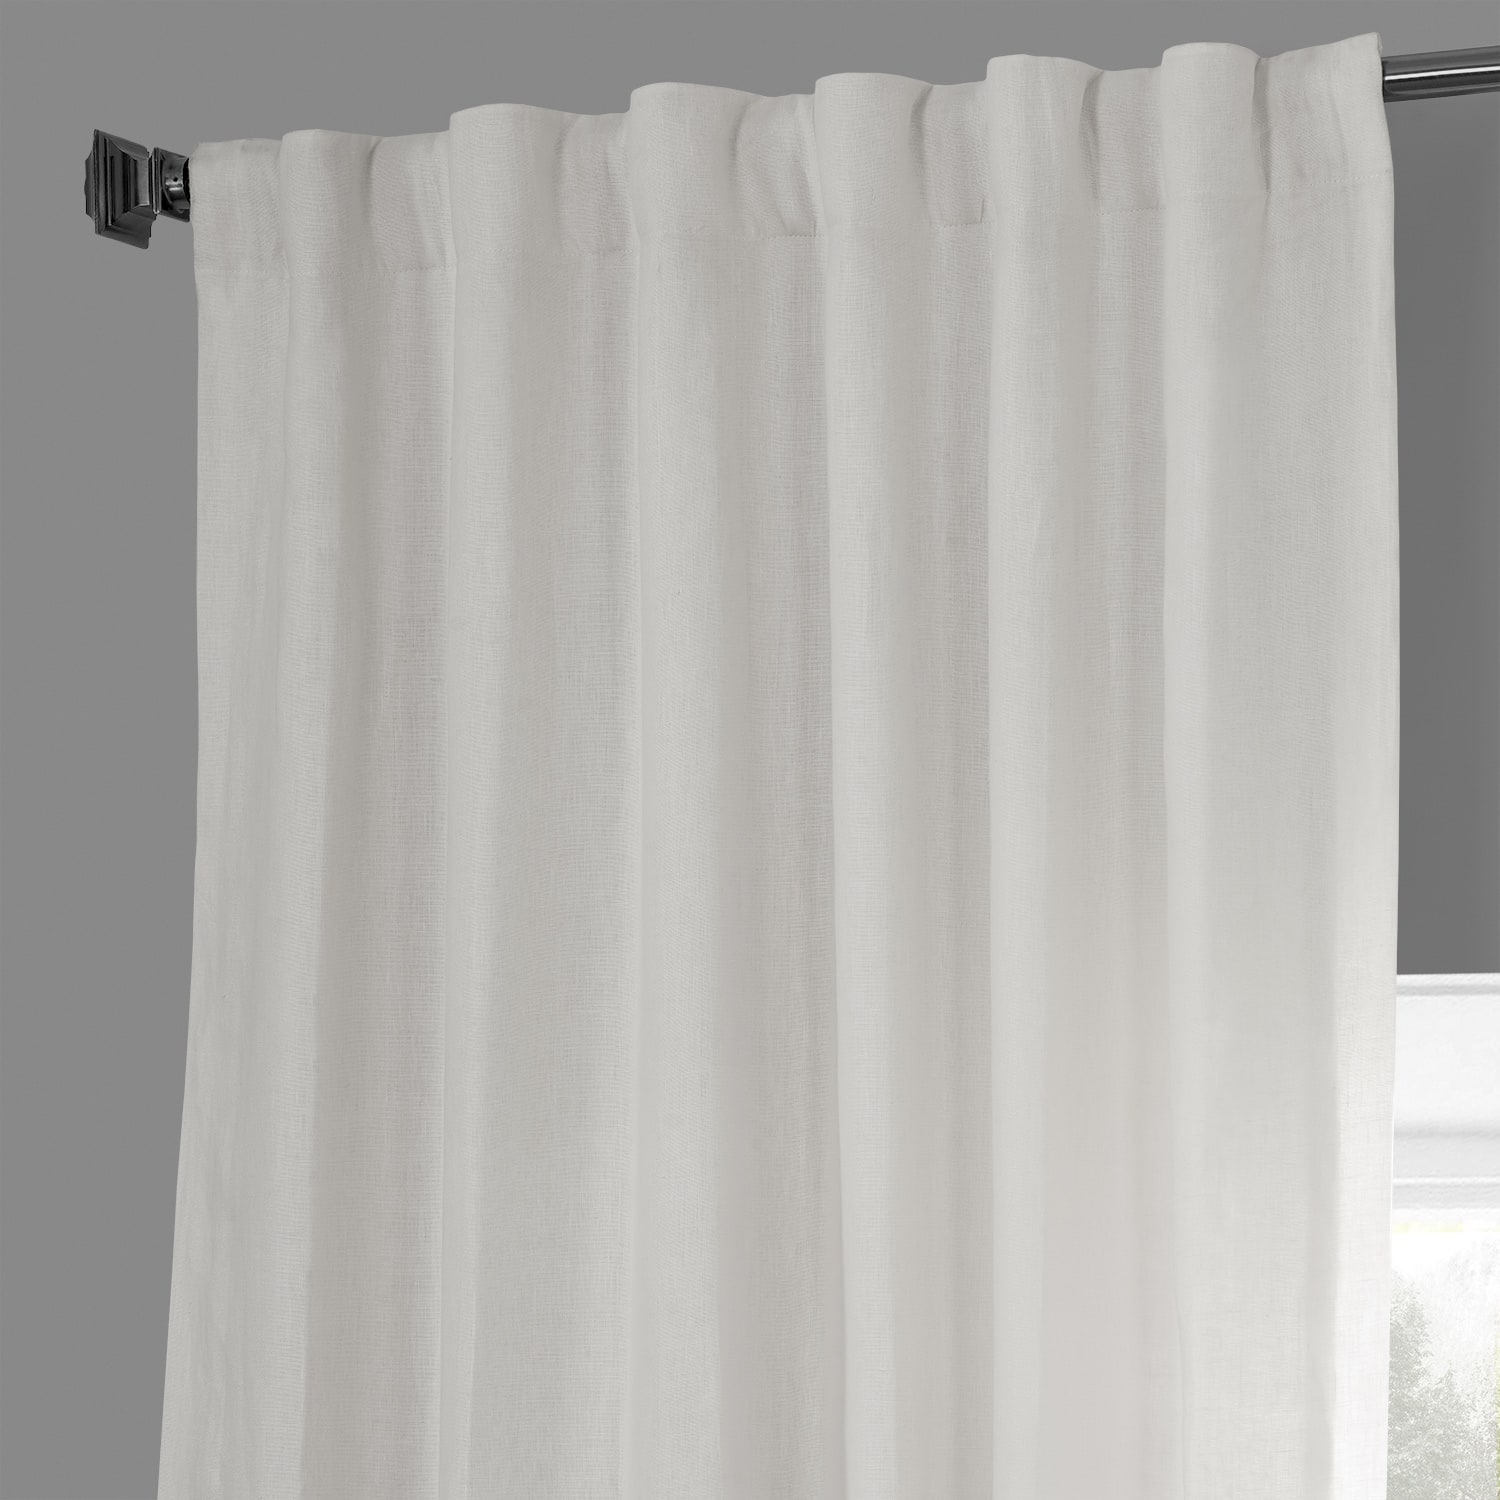 Crisp White French Linen Curtain